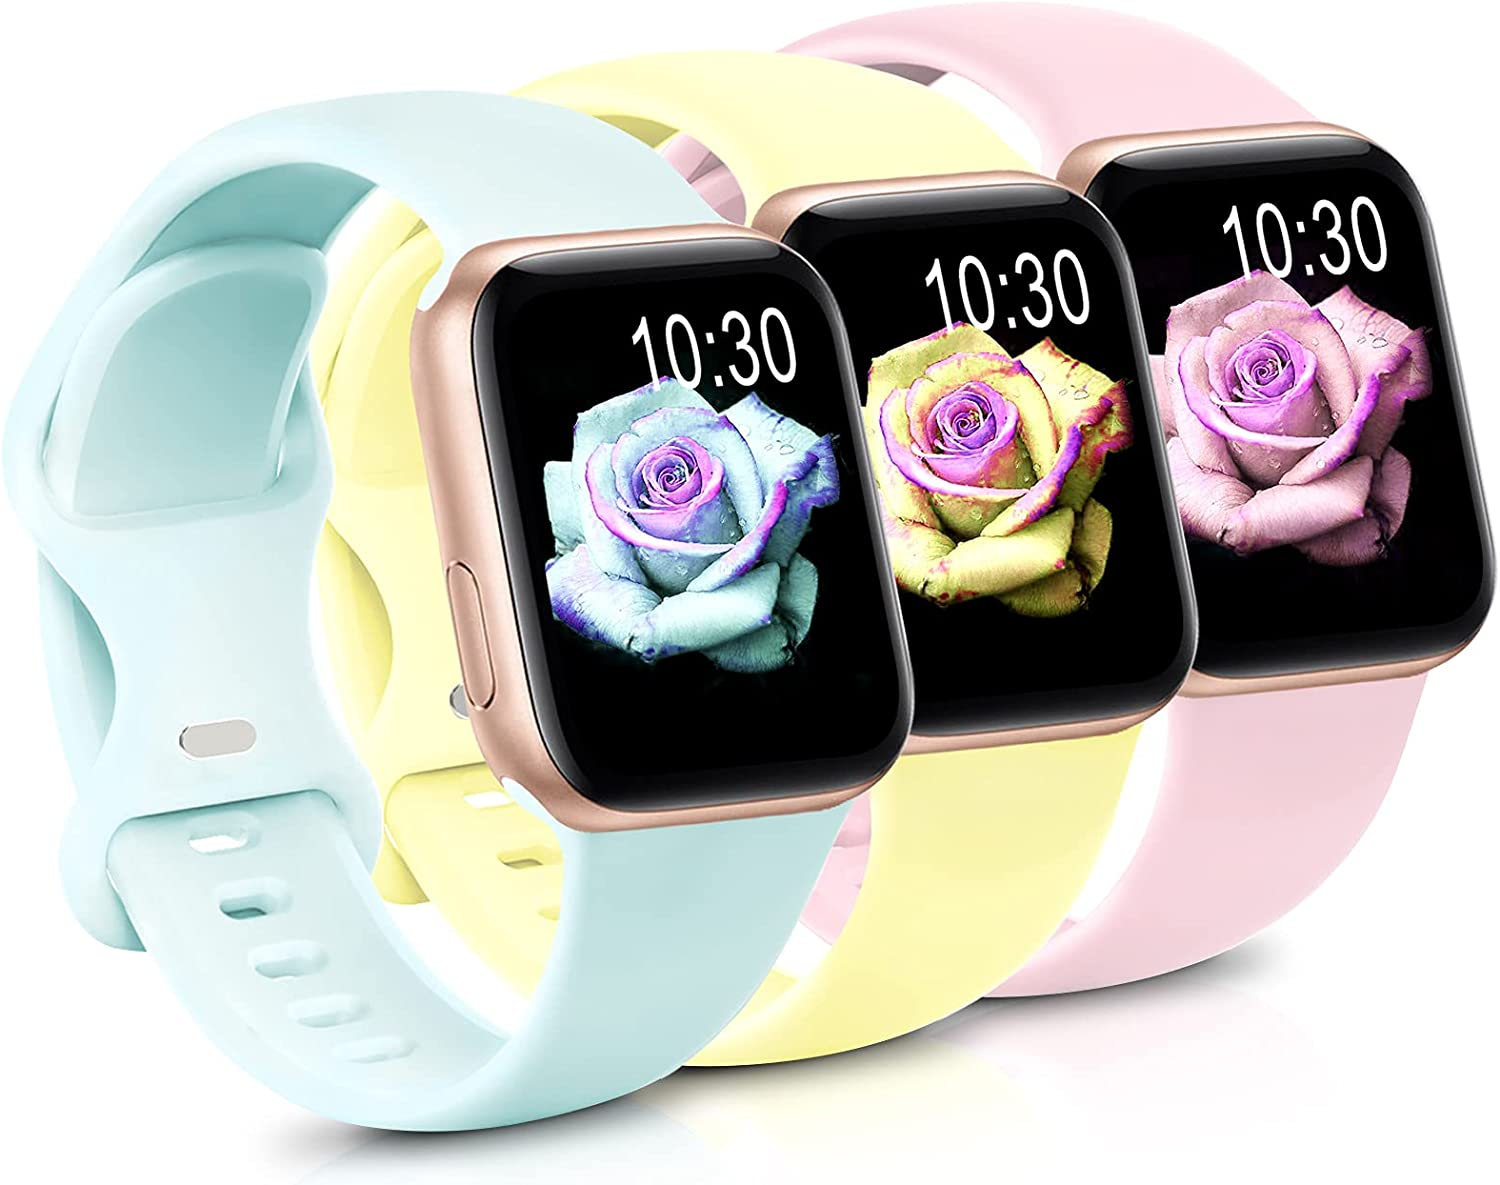 Sport Band Compatible with Apple Watch iWatch Bands 42mm 44mm 38mm 40mm ,Soft Silicone Strap Wristbands for Apple Watch Series 3 6 5 4 2 1 SE Women Men Pack 3,Goose Yellow/Pink/Light Green,42/44mm,M/L